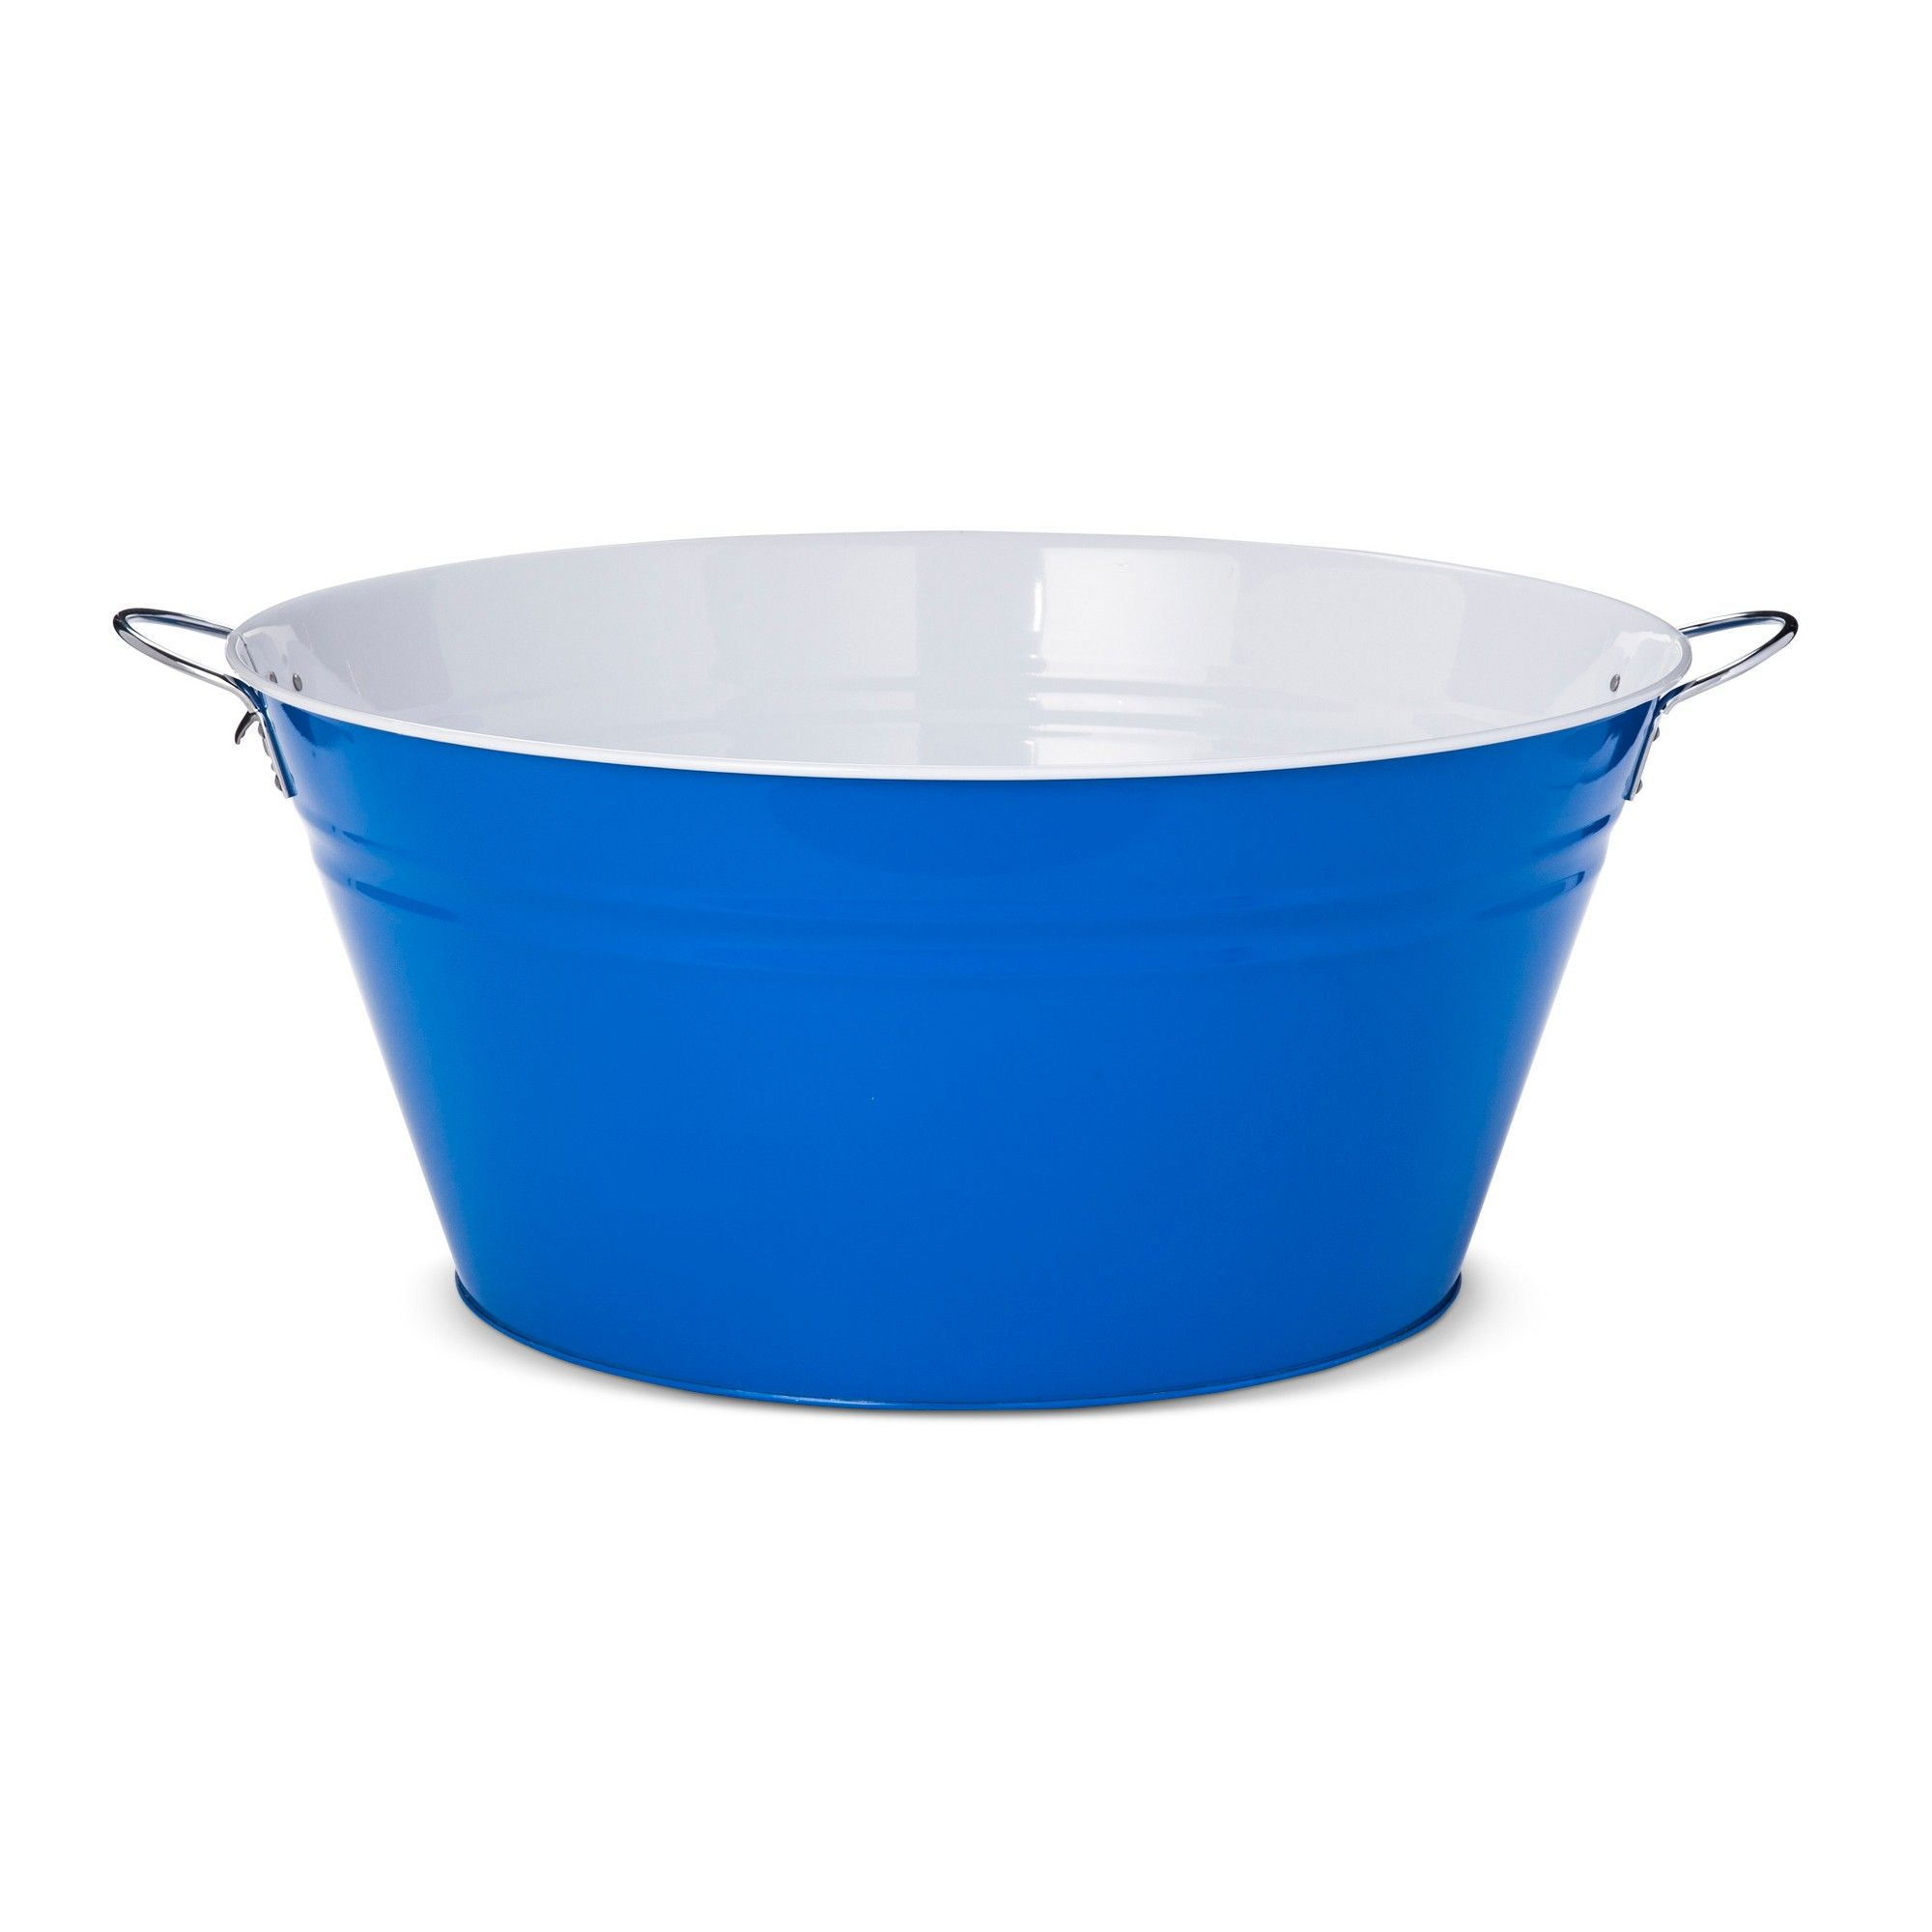 11.9gal Steel Beverage Tub - Blue/White | Tubs, Steel and Products